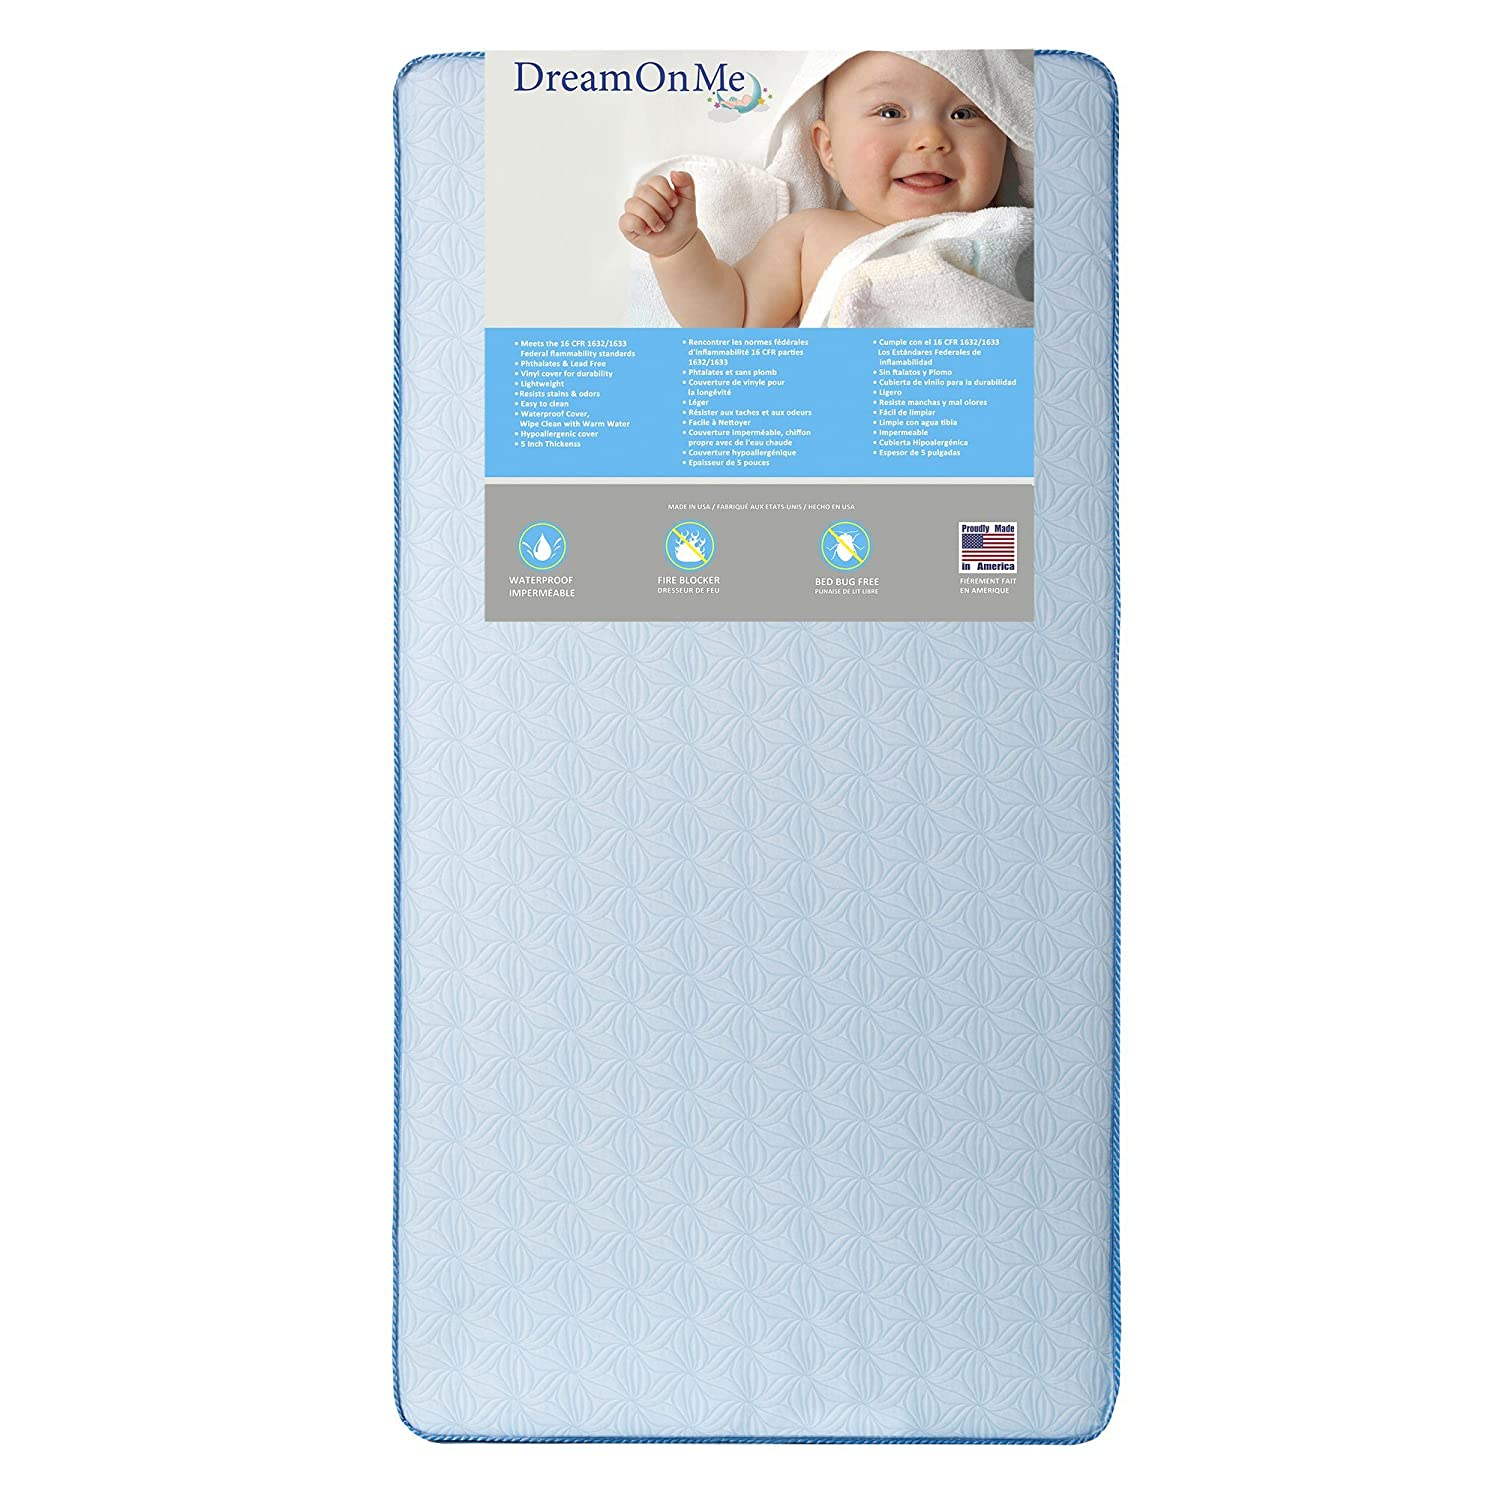 Dream On Me Crib and Toddler, 130 Coil Mattress, Moonlight 150-130